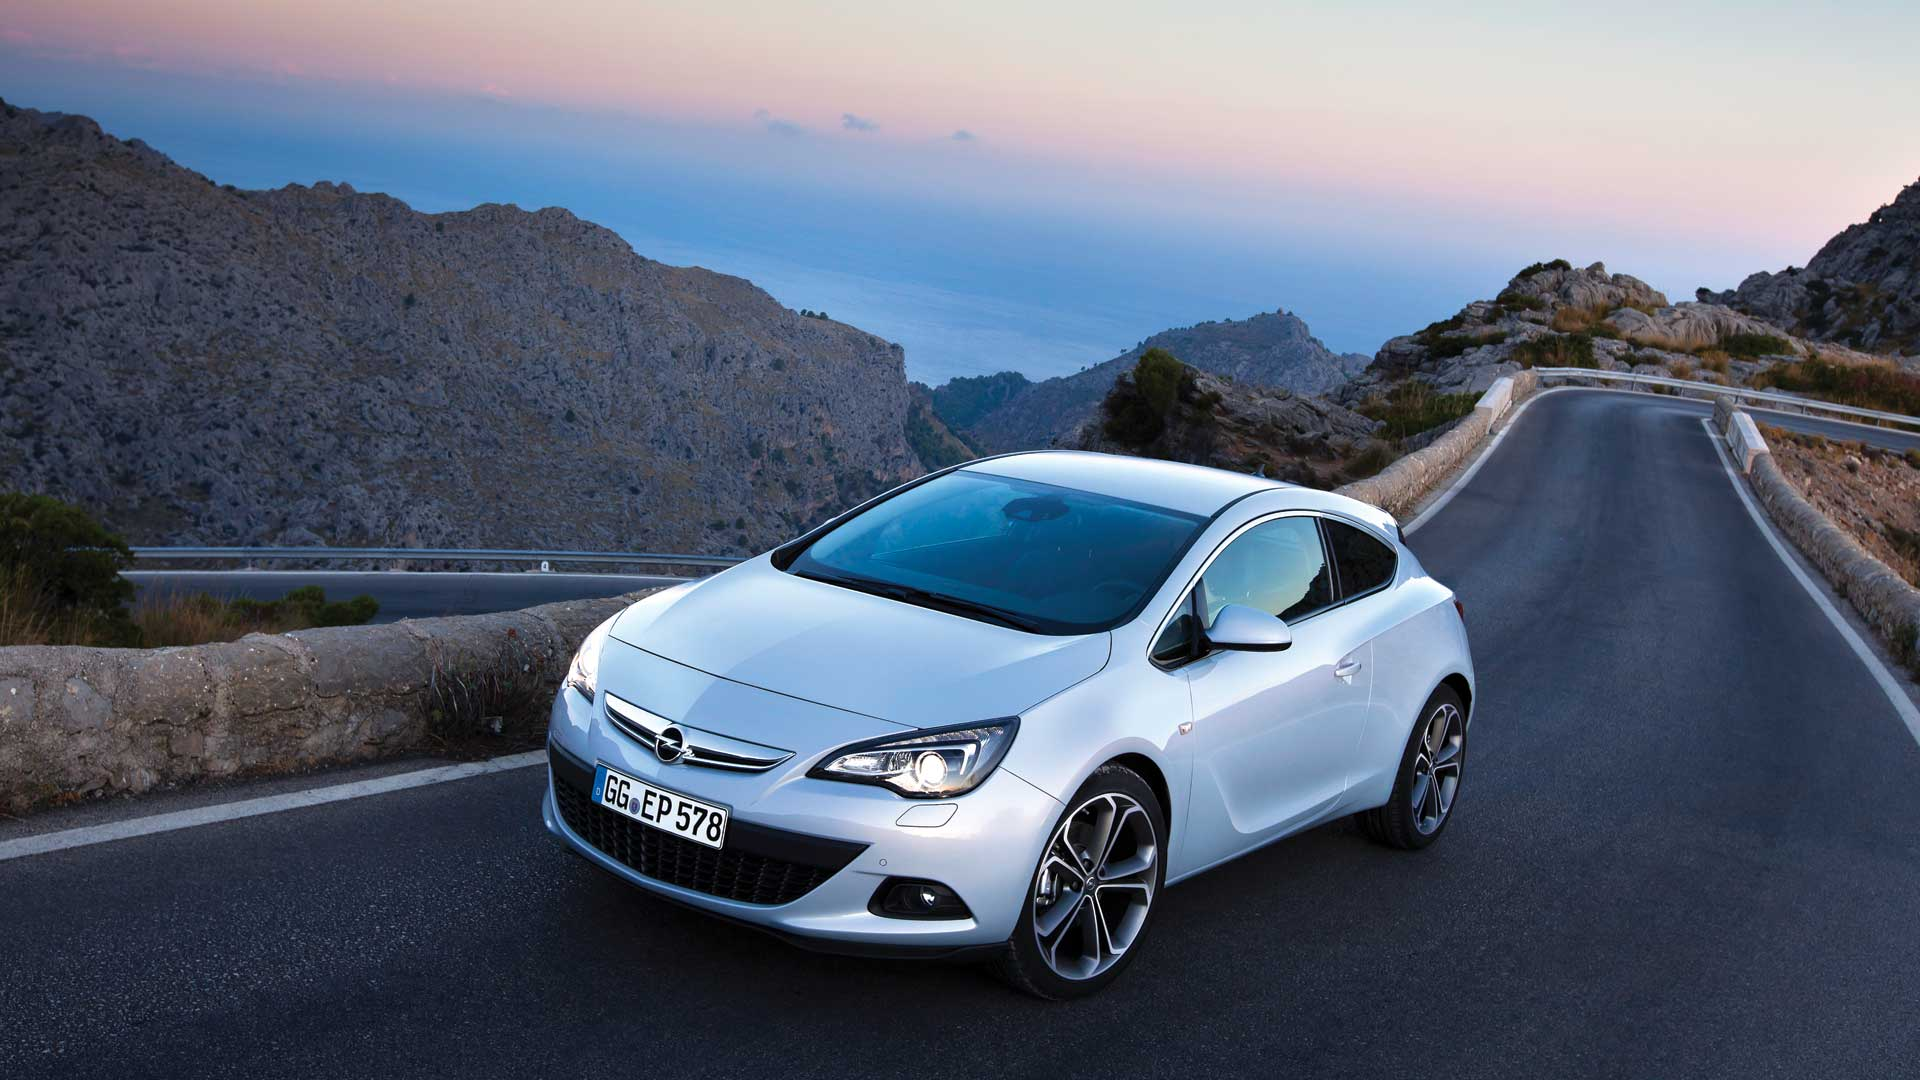 Opel Cars Wallpapers